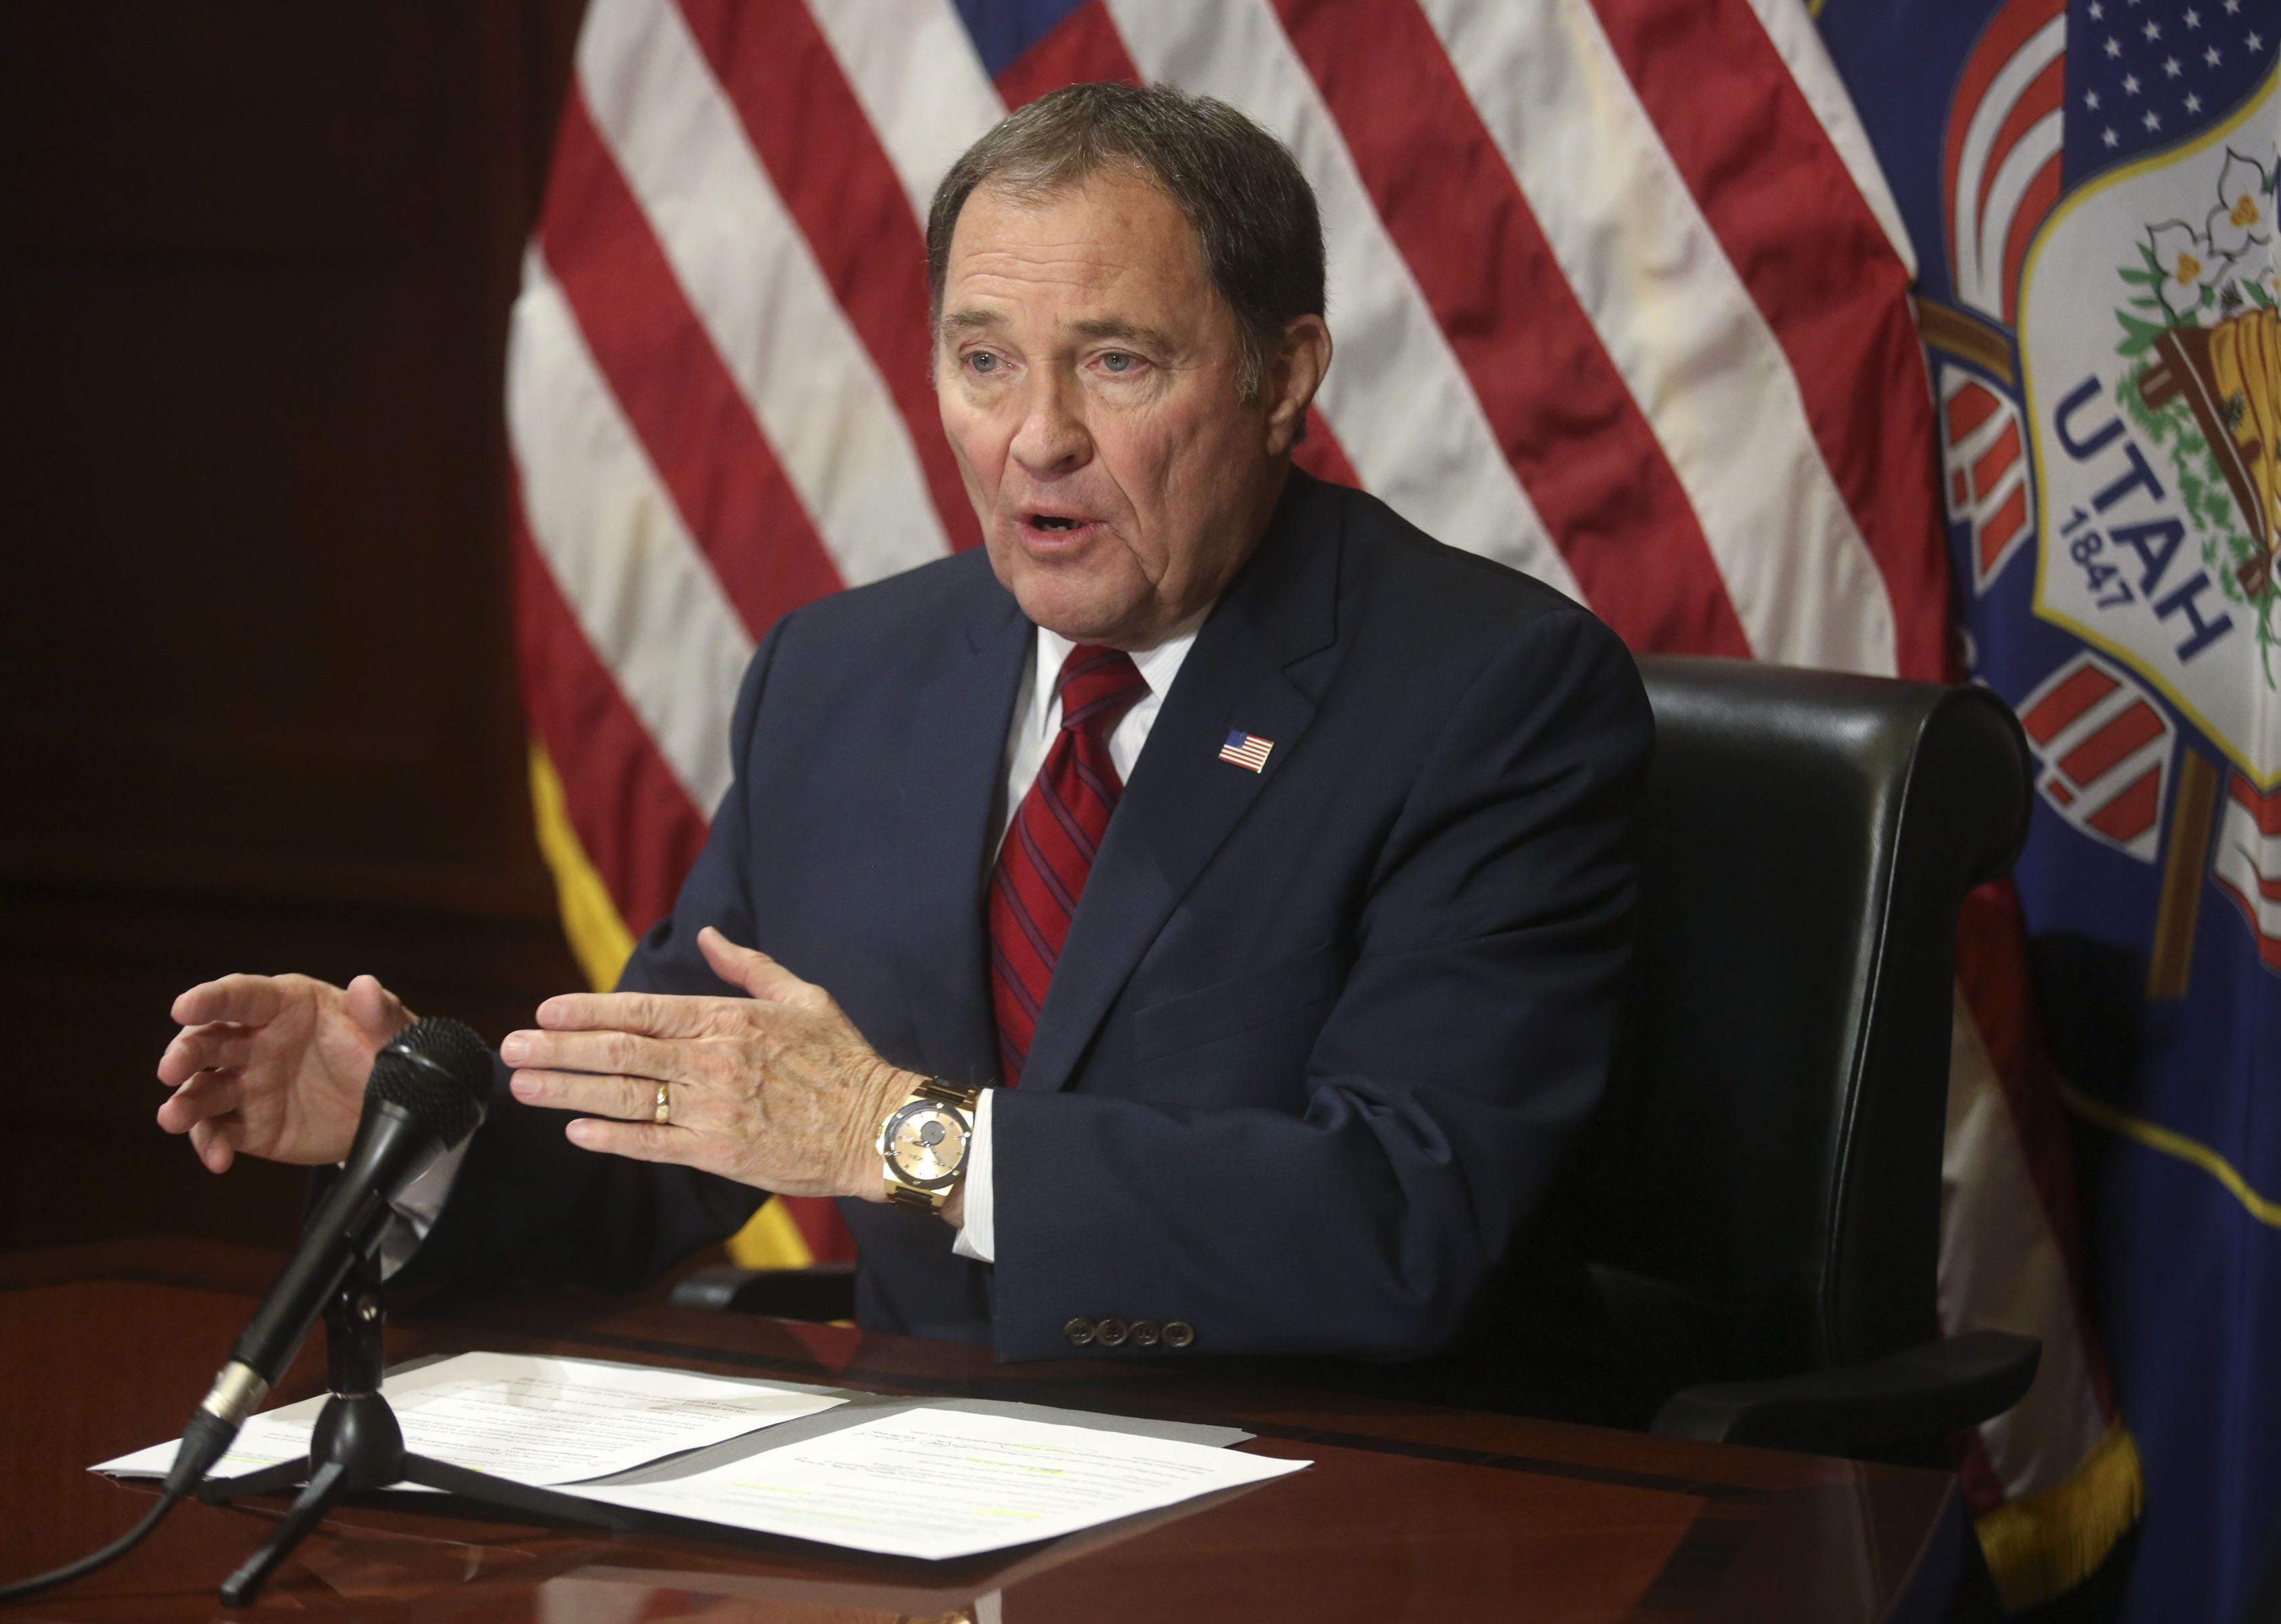 Gov. Gary Herbert speaks to members of the media about tax reform and other current affairs at the Capitol in Salt Lake City on Thursday, Feb. 14, 2019.